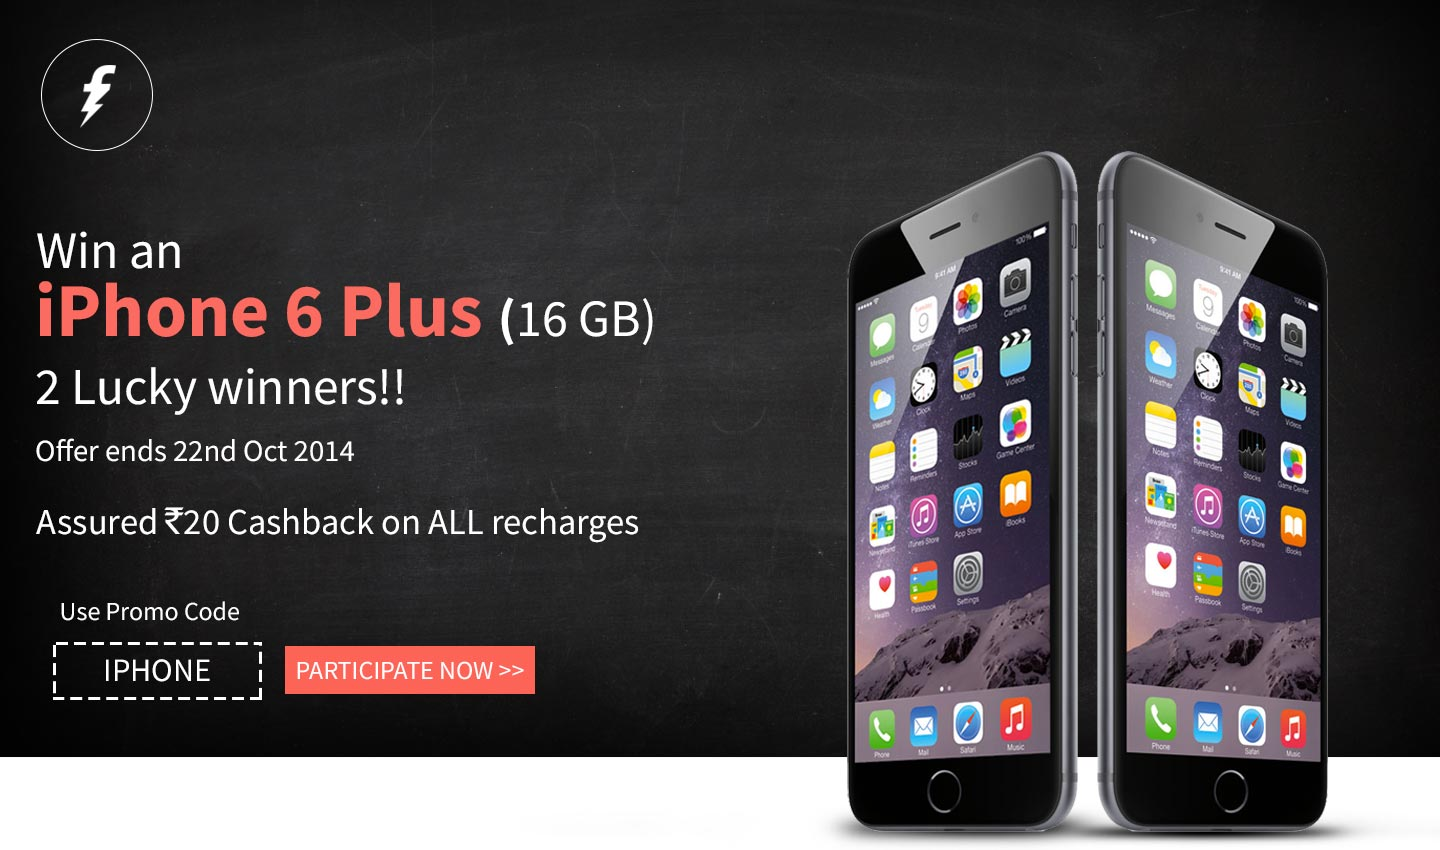 Freecharge iPhone 6 plus offer